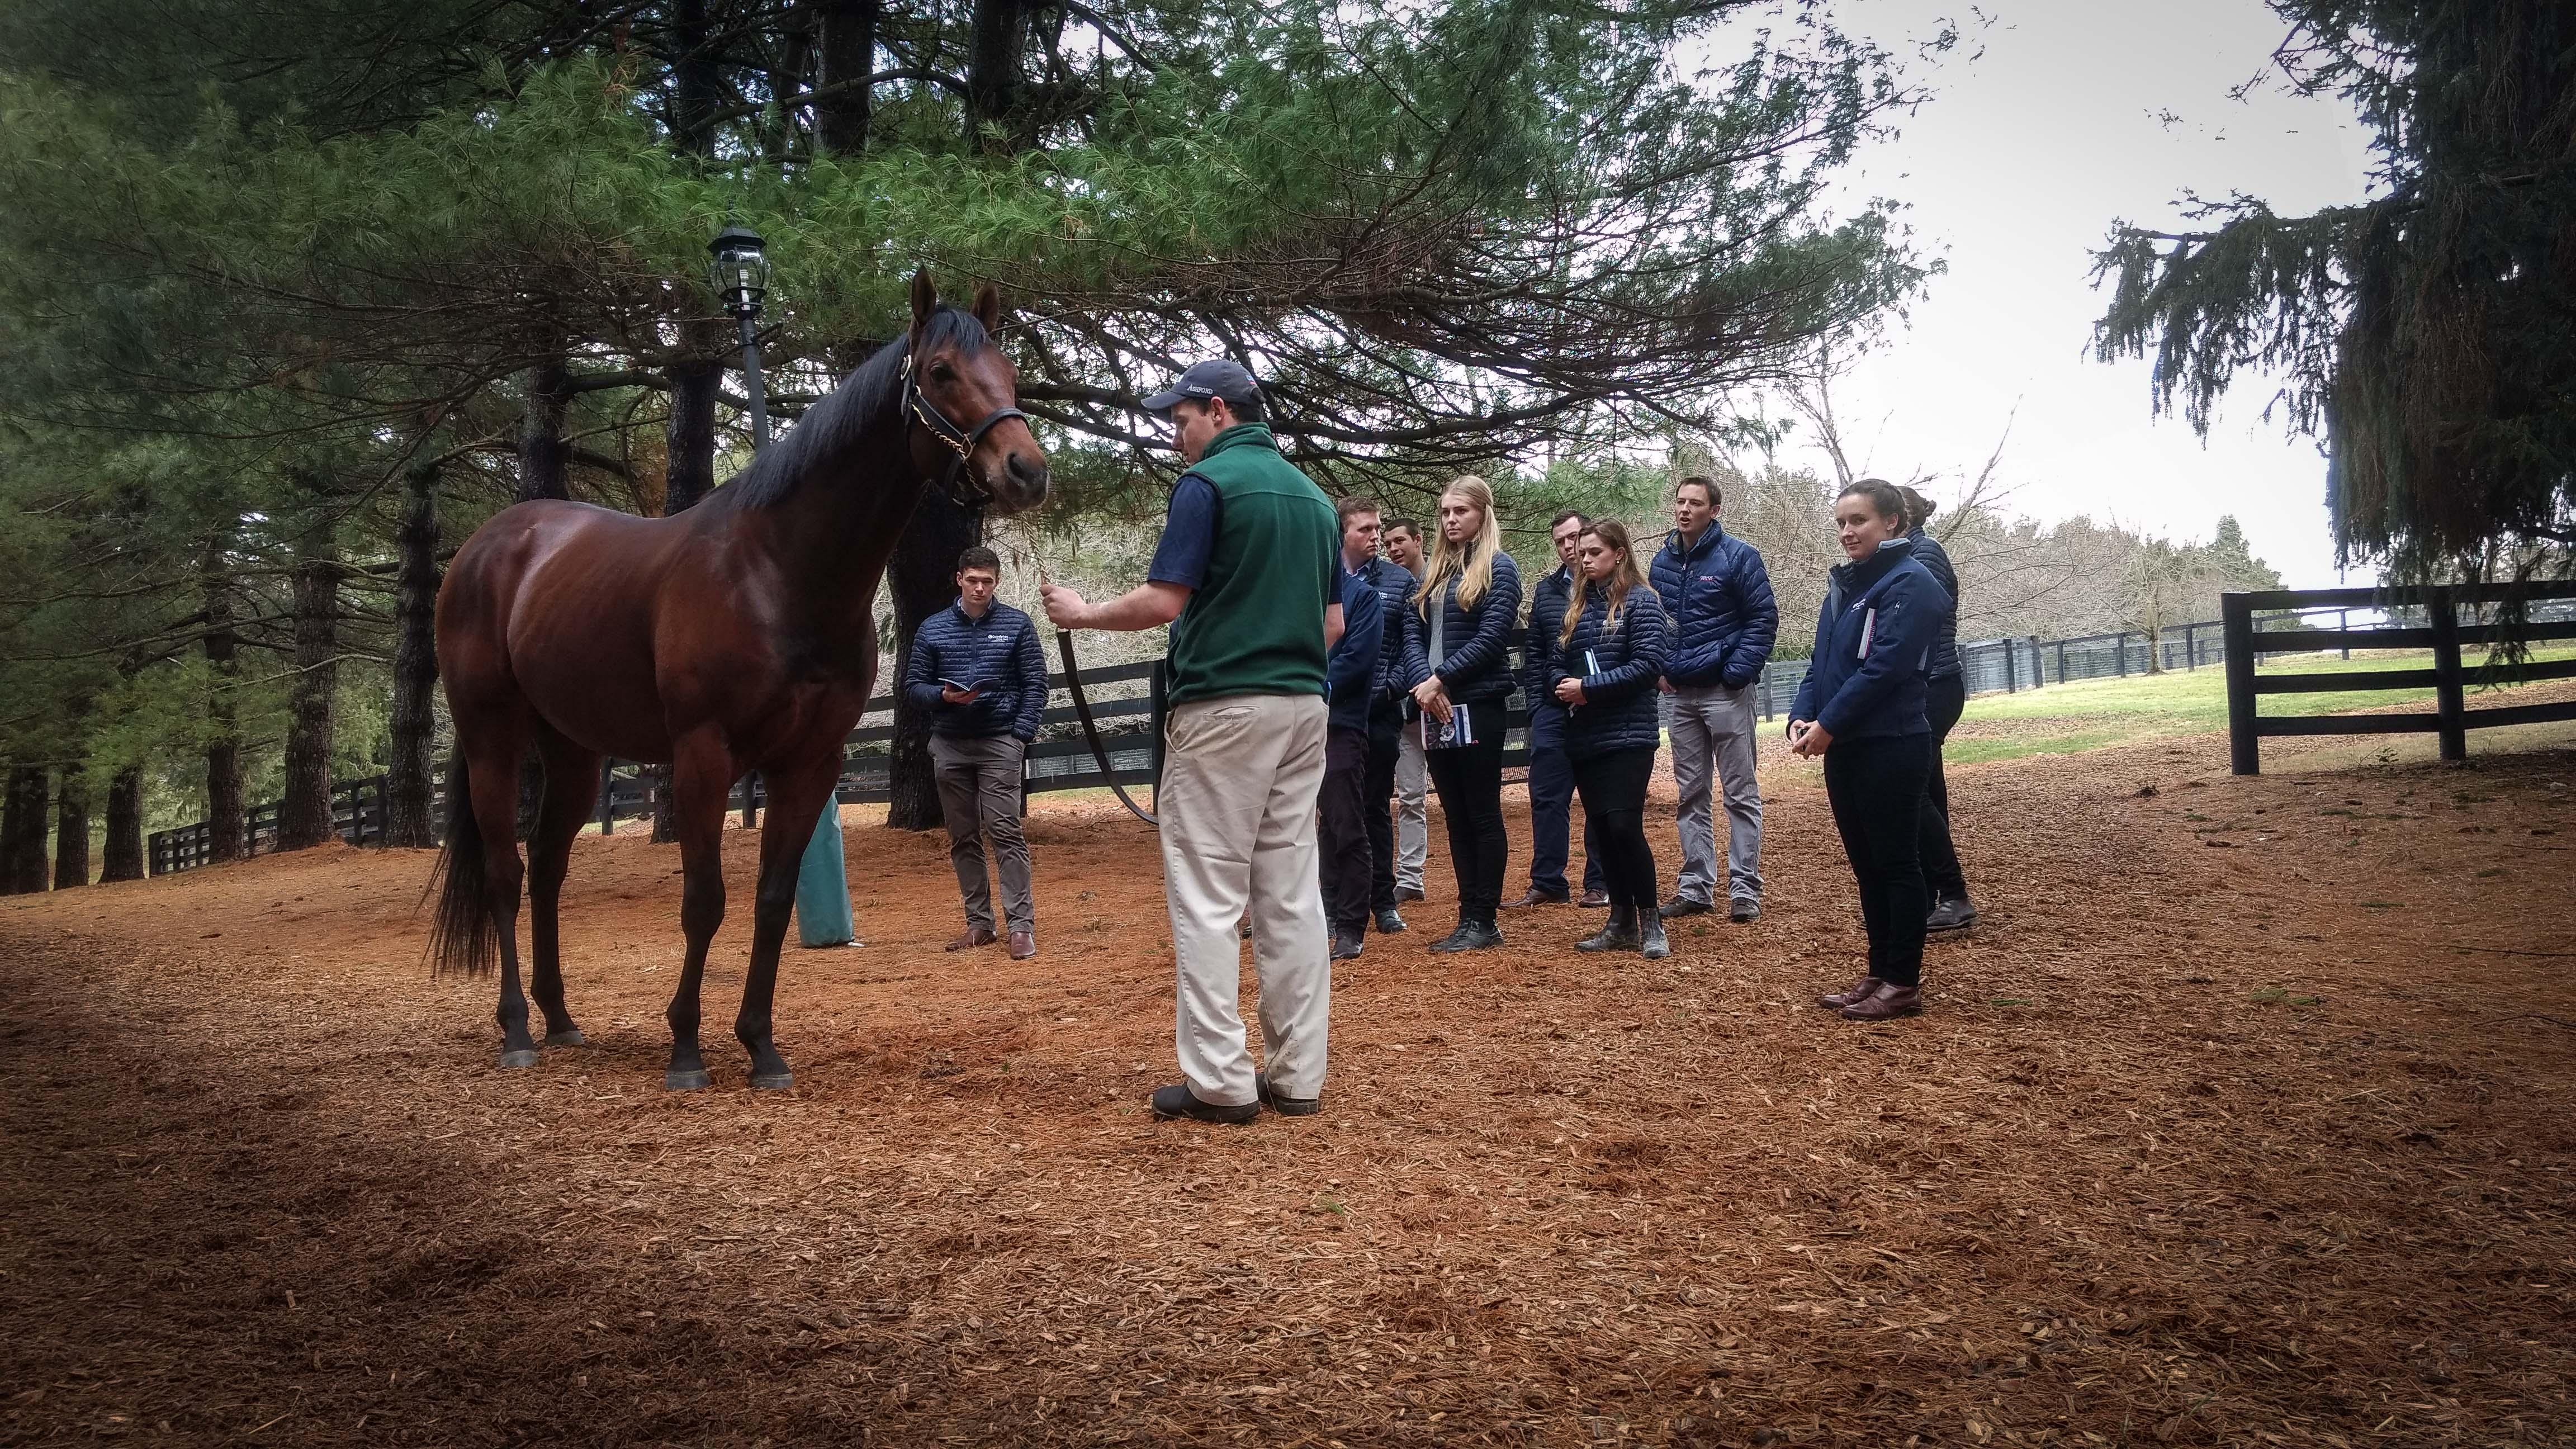 Air Force Blue: Flying Start graduate Scott Calder, now working with sales and marketing at Coolmore, gave the trainees a tour of Ashford Stud in Kentucky. Here the group is with the stallion Air Force Blue.  Photo: Amie Karlsson